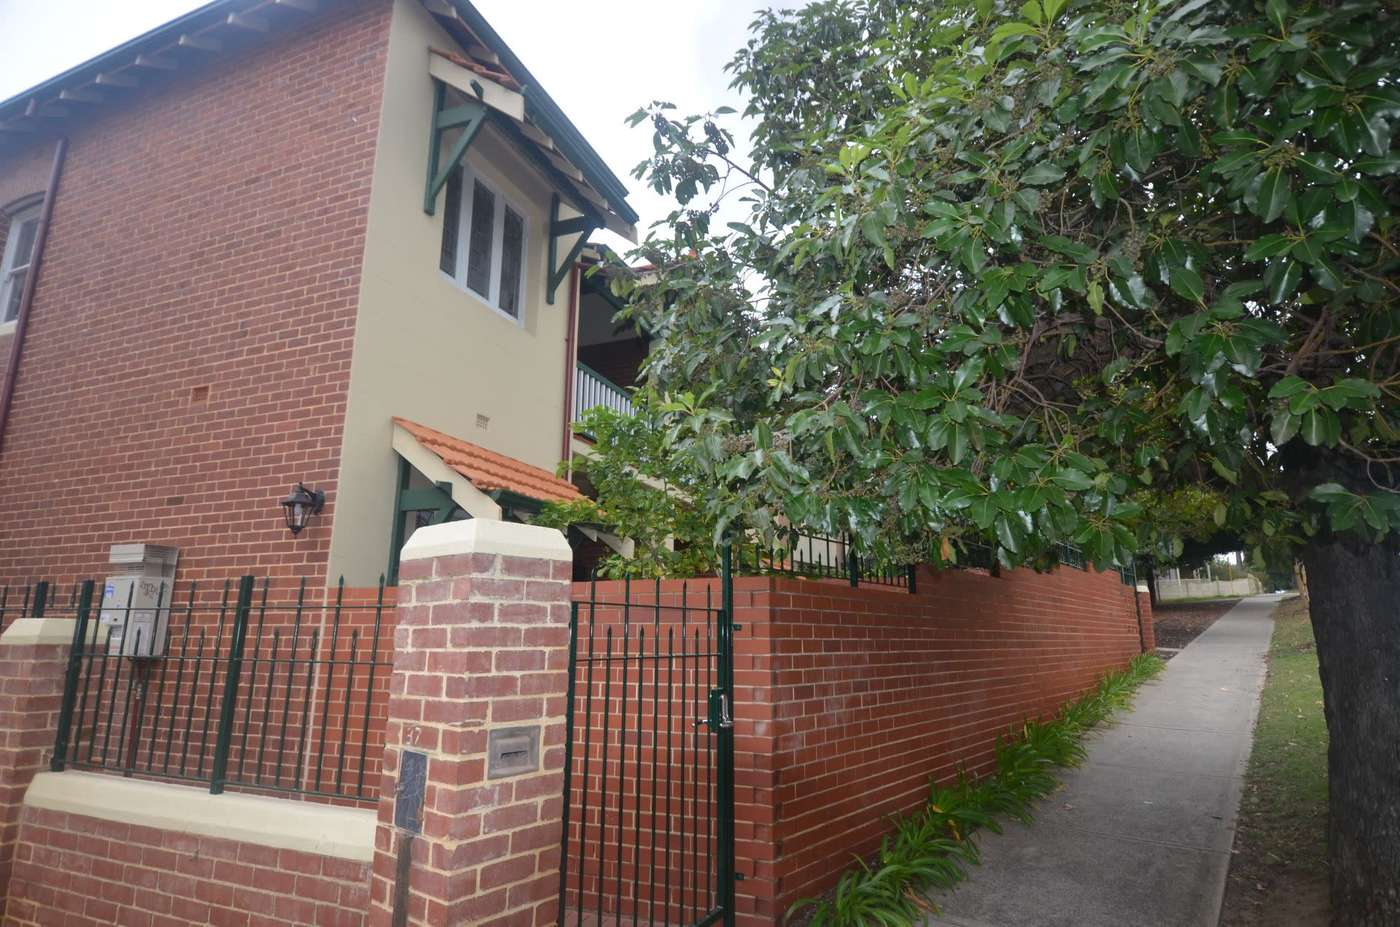 Main view of Homely apartment listing, 5/43 Walcott Street, Mount Lawley, WA 6050